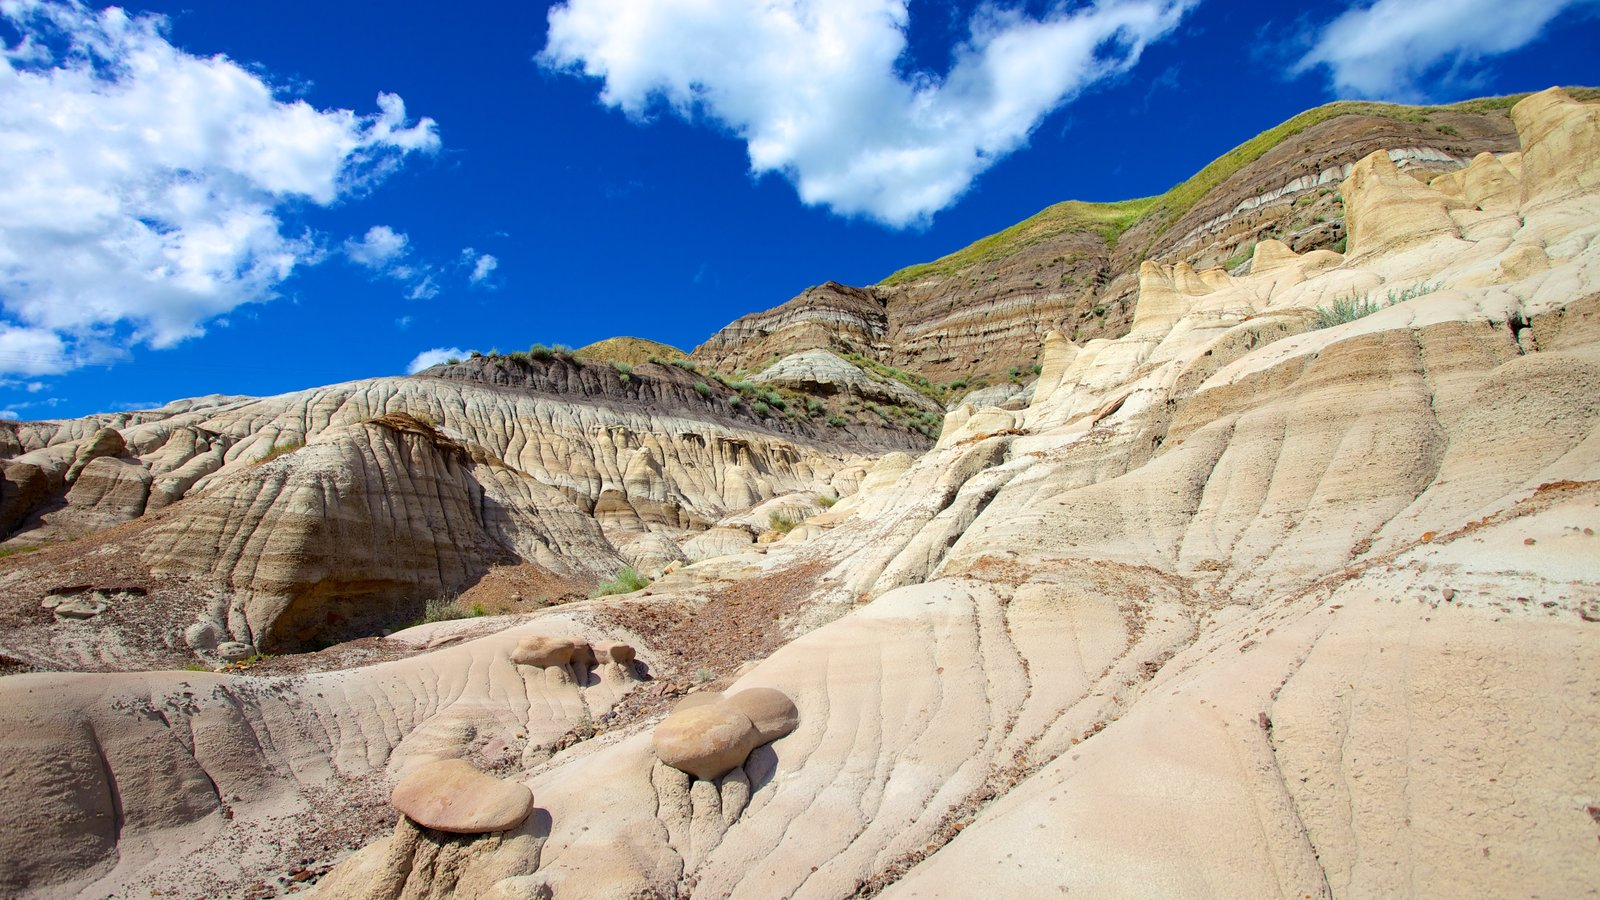 Drumheller which includes a gorge or canyon